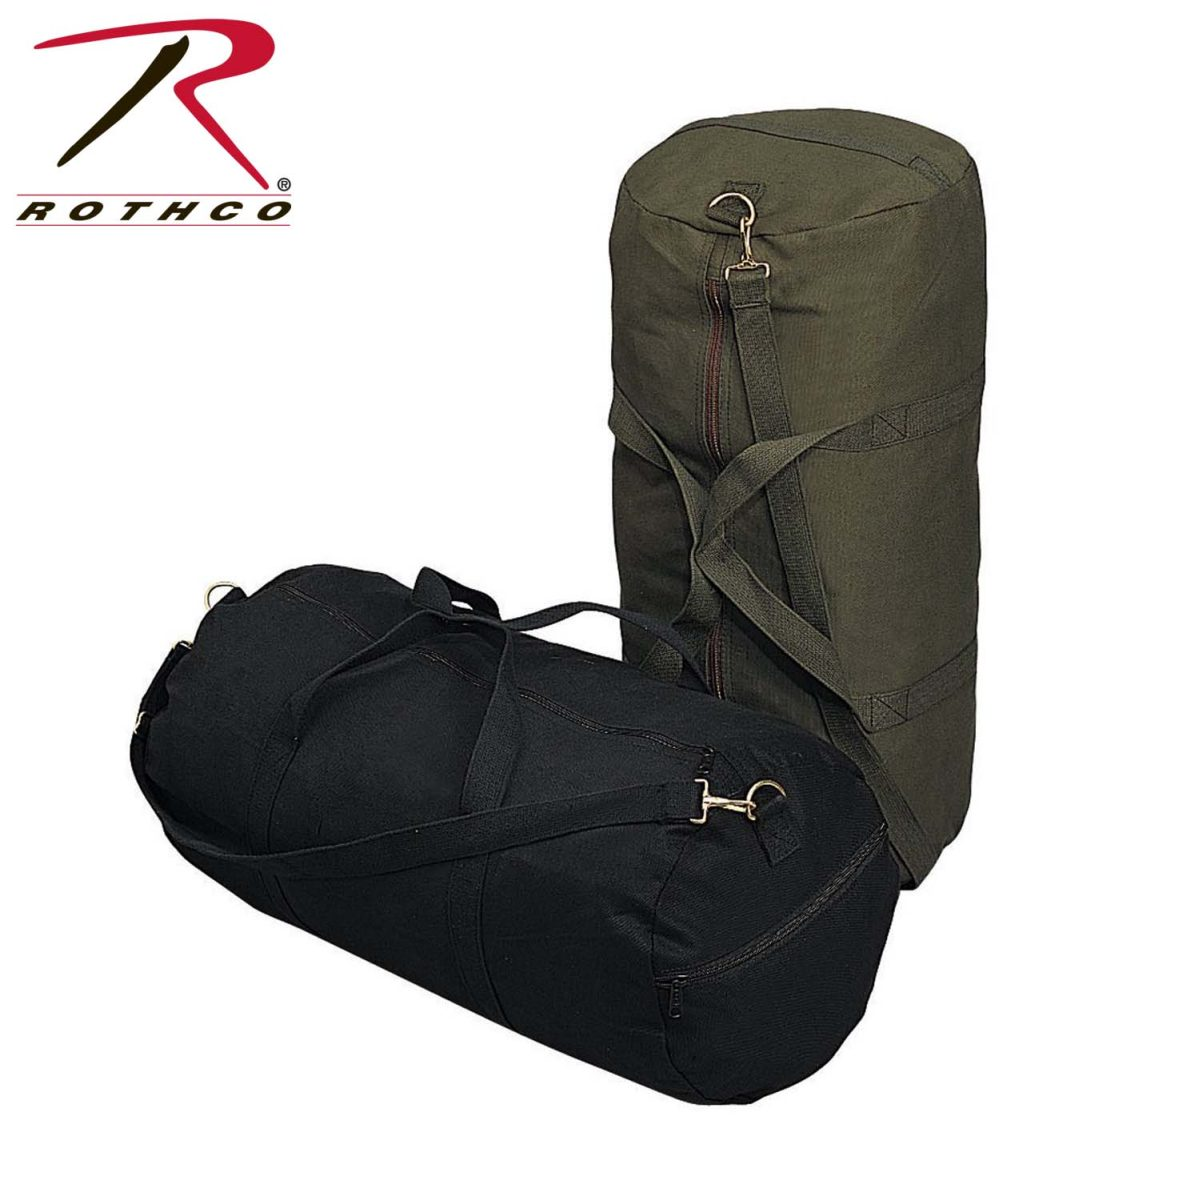 d65fe7e8fd Buy Rothco Canvas Shoulder Duffle Bag - 24 Inch - Rothco Online at ...